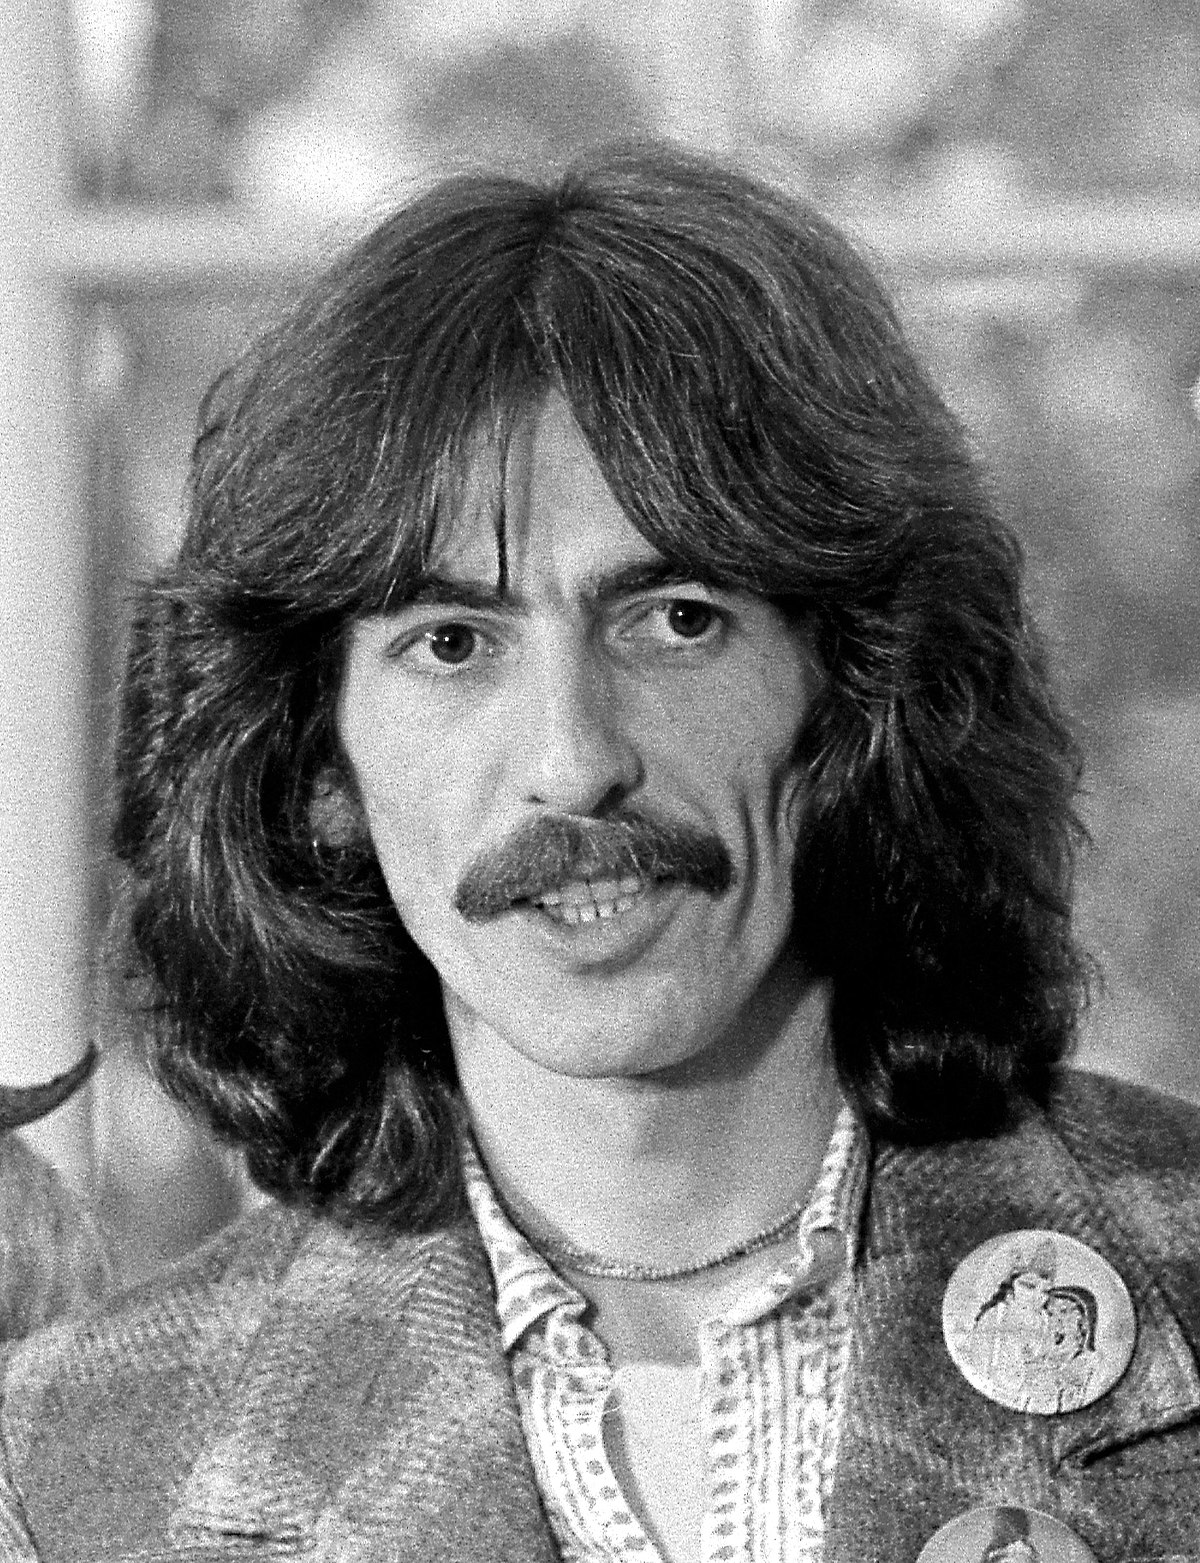 George Harrison nude photos 2019